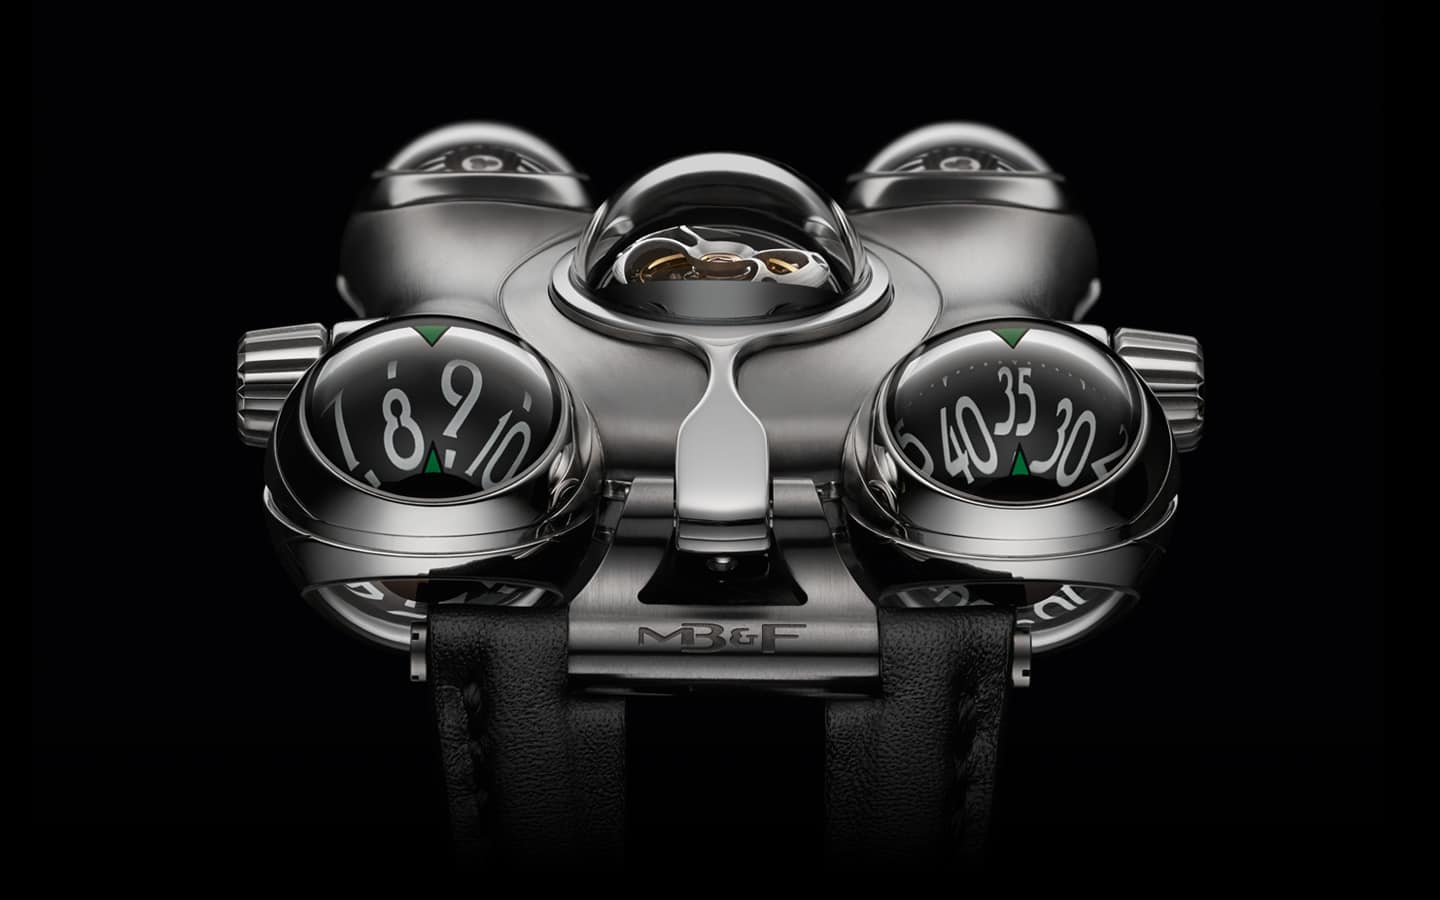 MB&F Horological Machine No.6 (HM6) Space Pirate Watch Unique Stuff to Buy